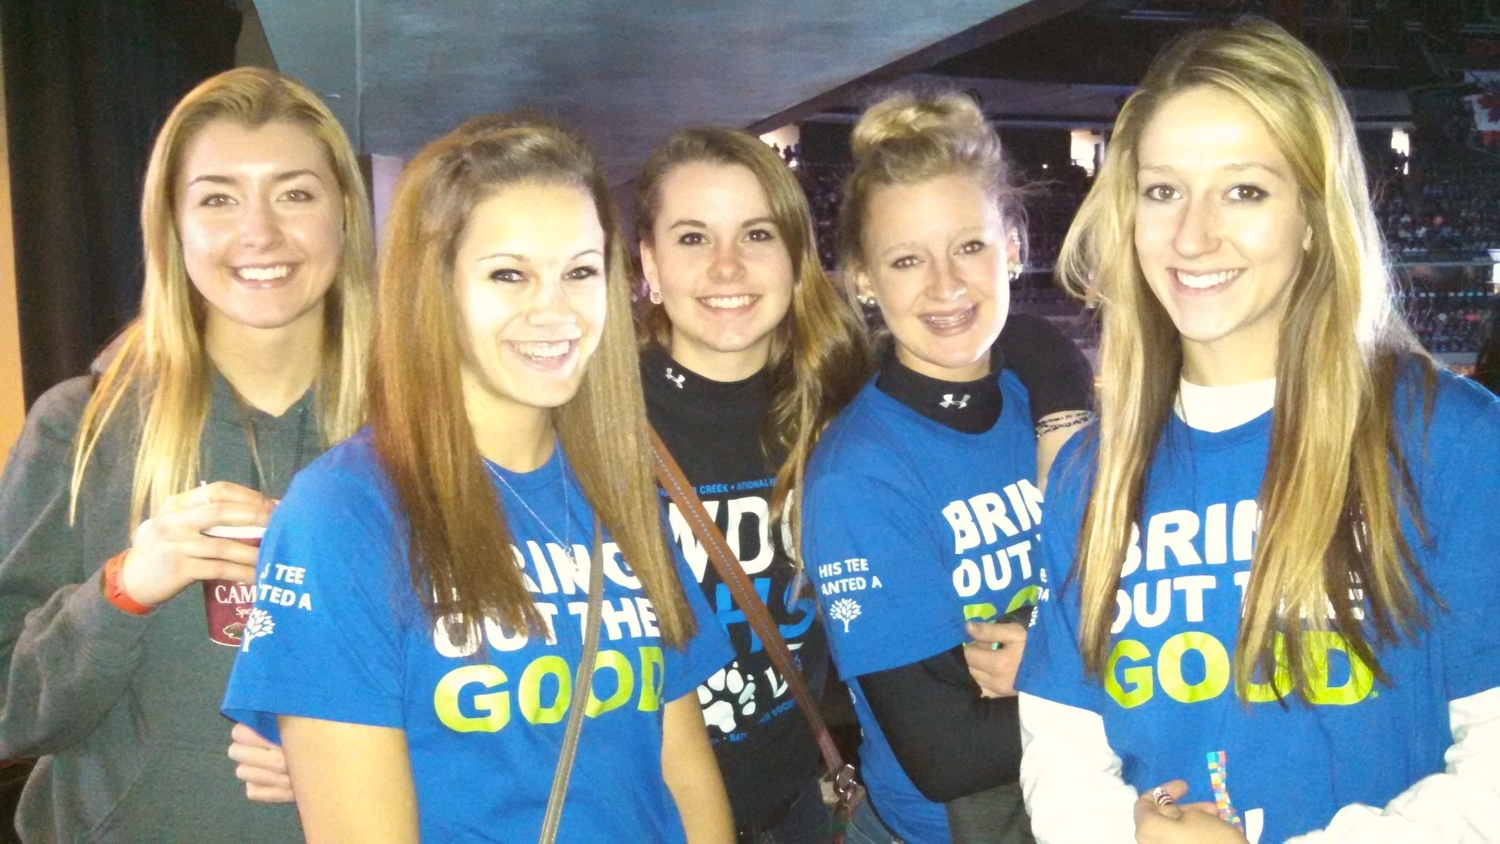 """Wearing their """"Bring Out the Good"""" tees at the We Day rally this morning are WDC students, from left, Carrie Nelson, Autumn Jahnke, Jennifer Craig, Sam Manselle and Danyel Post. (Photo by Rachel Bounds.)"""